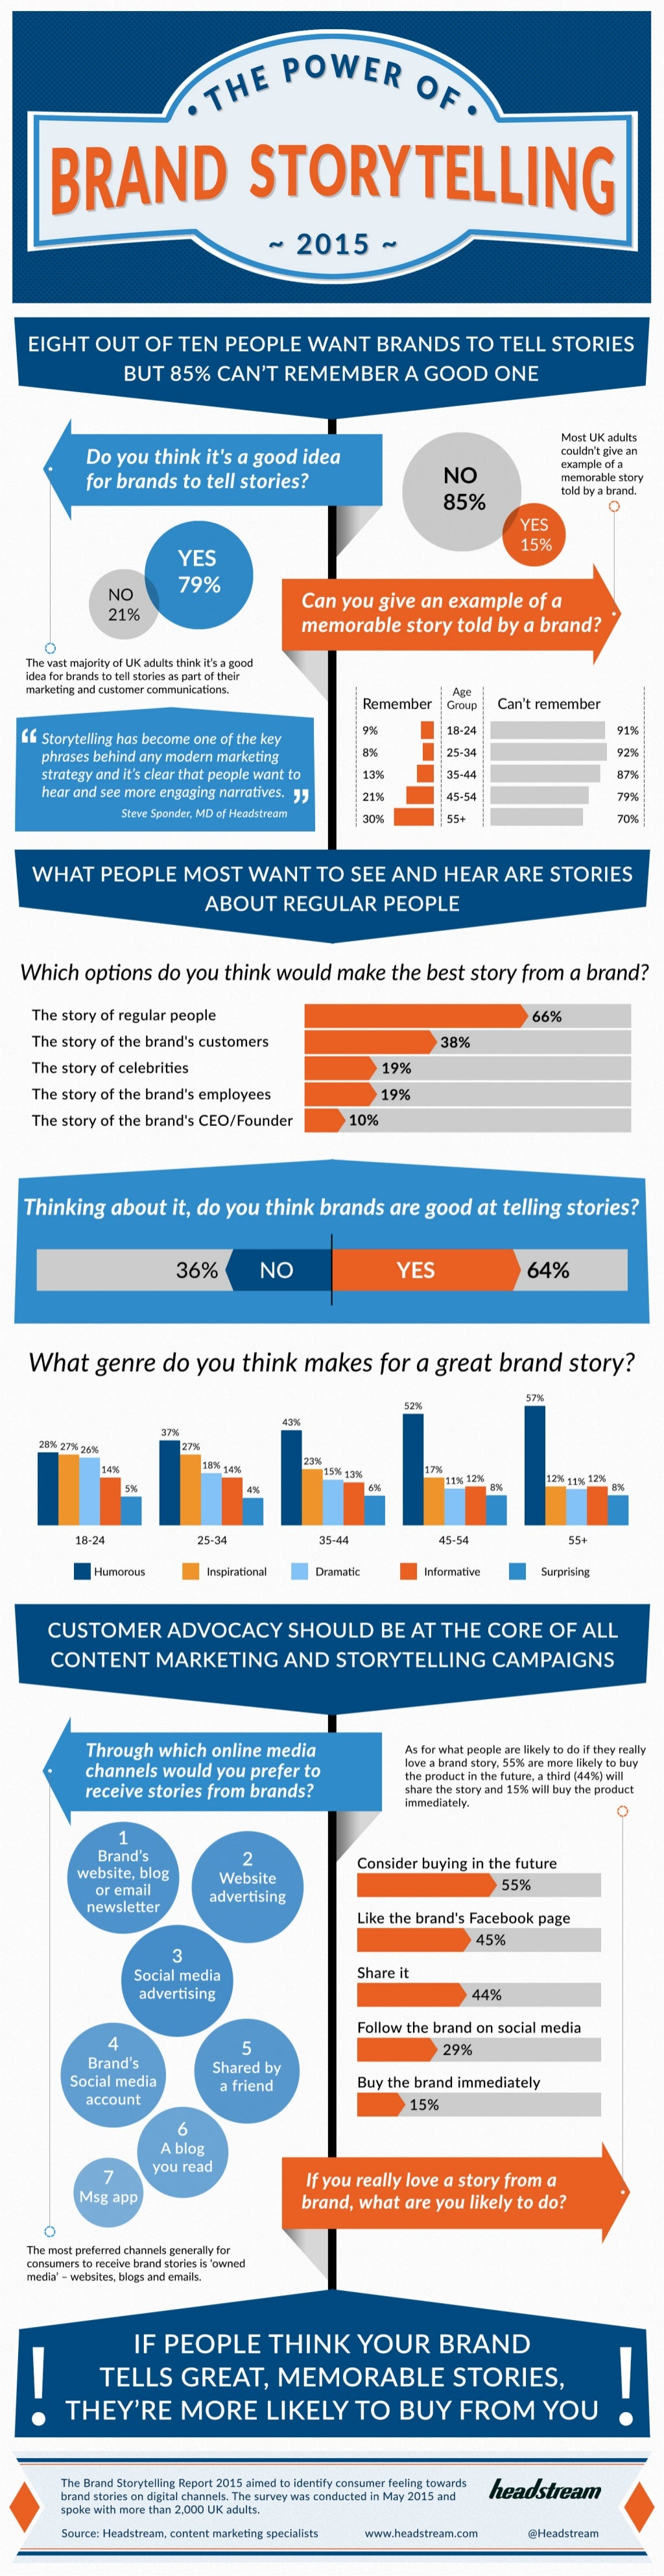 the power of brand storytelling